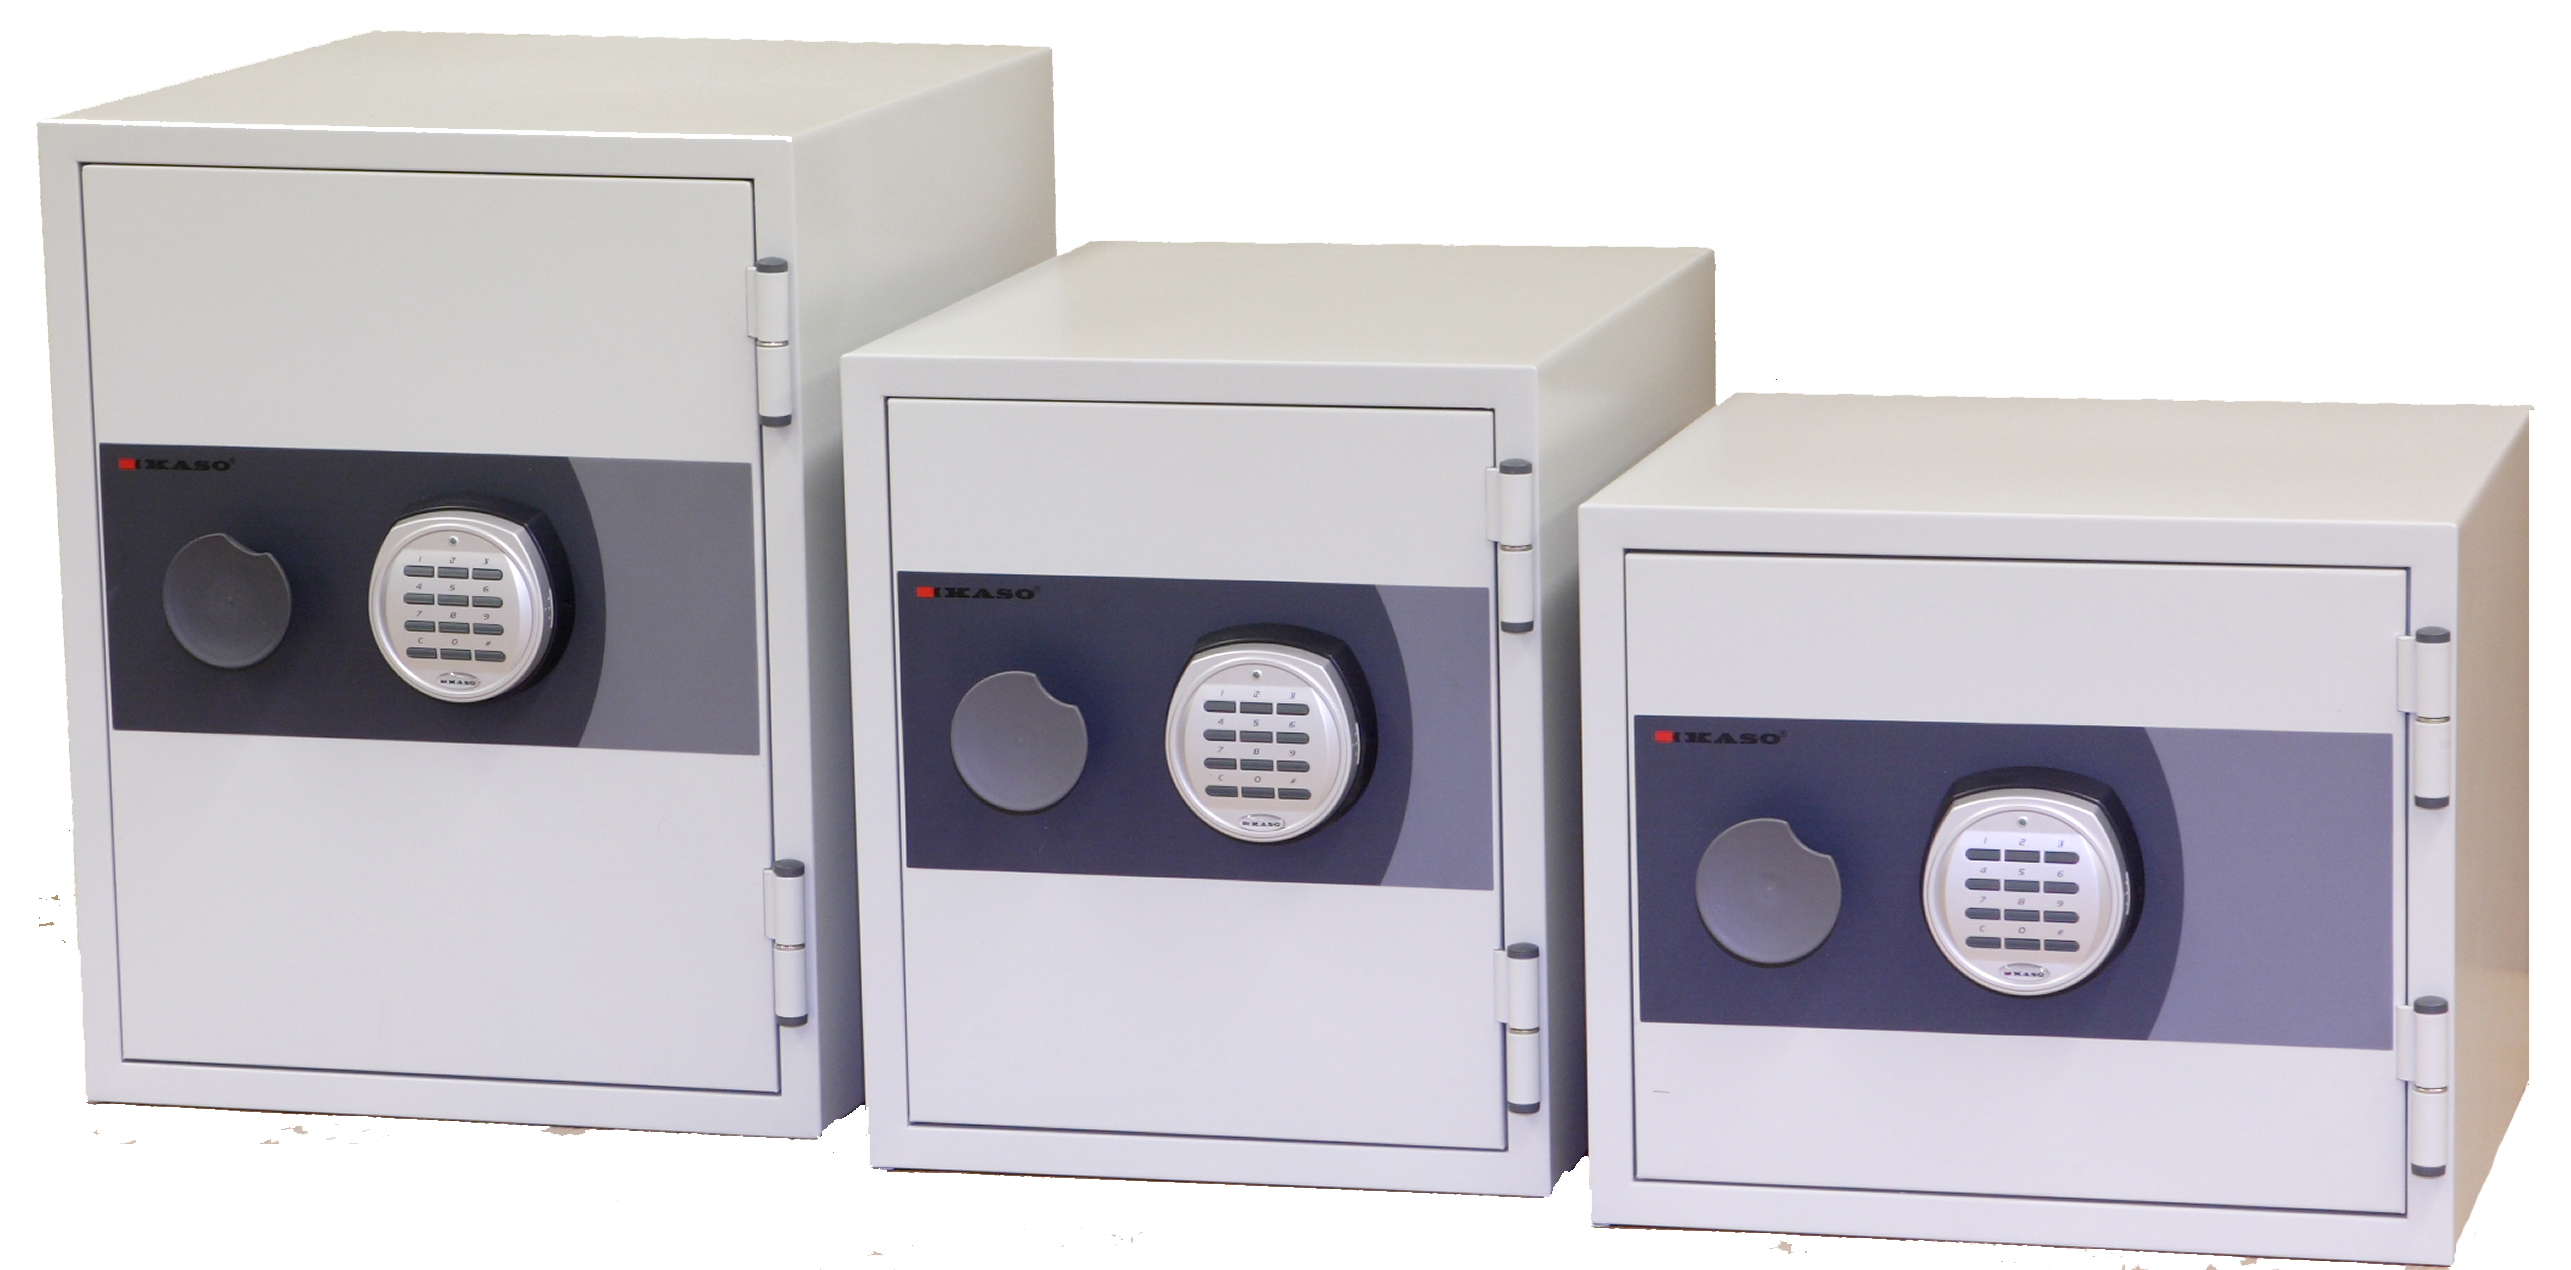 Serie AED-S1 Datentresore